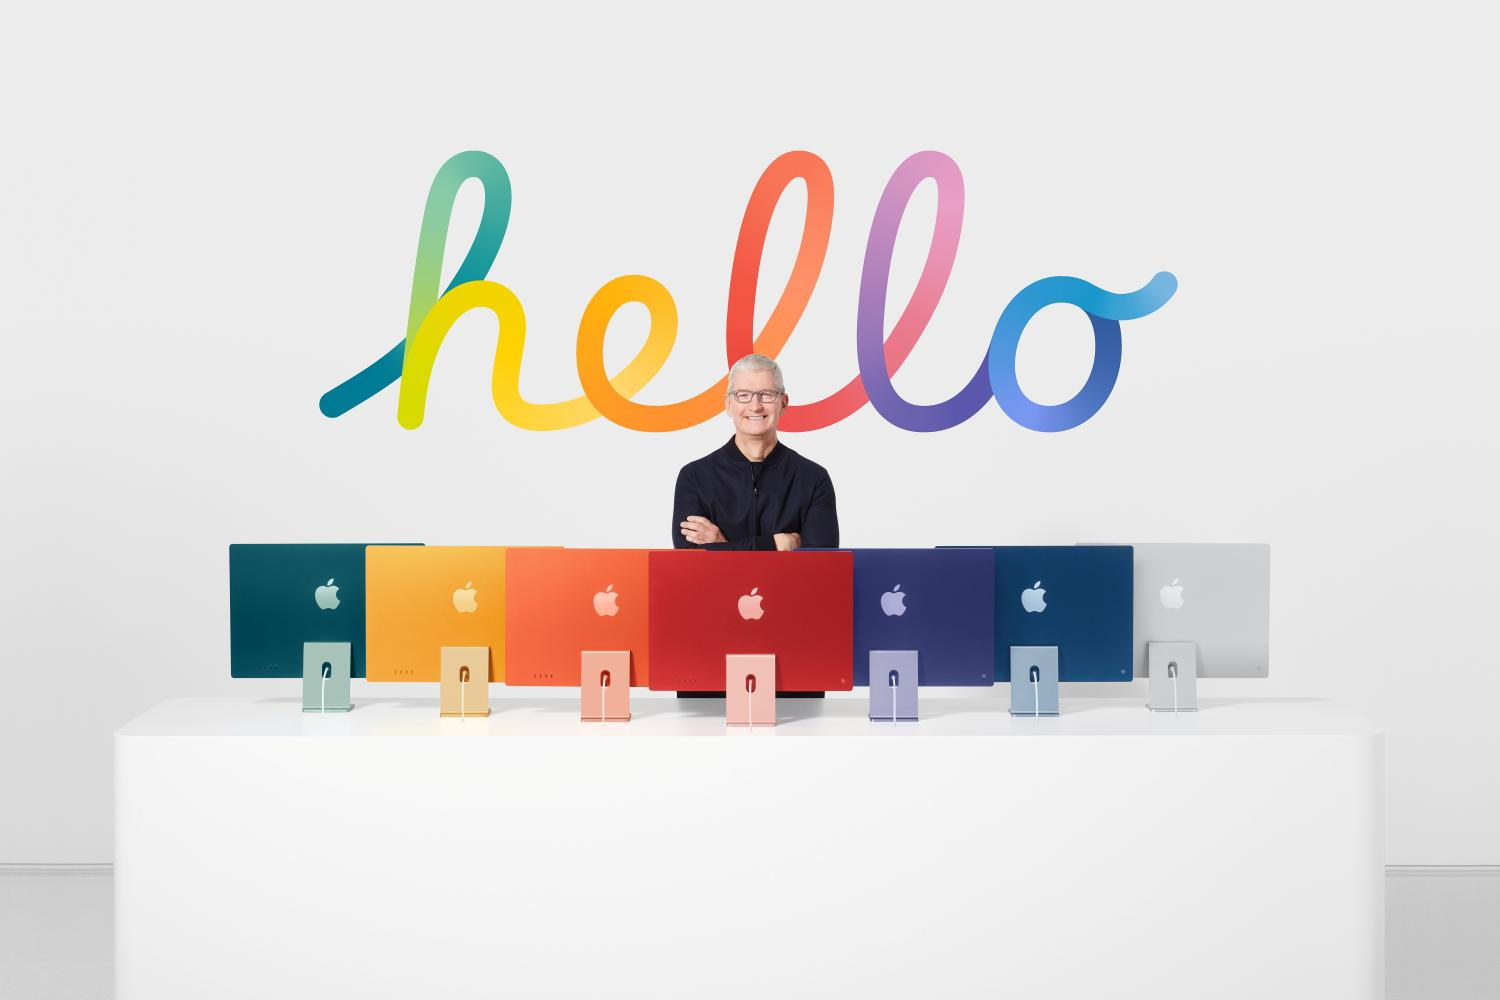 Tim Cook, CEO of Apple Inc, stands with the all-new iMac line-up in this still image from the keynote video of a special event at Apple Park in Cupertino, California on Tuesday.Apple Inc via REUTERS